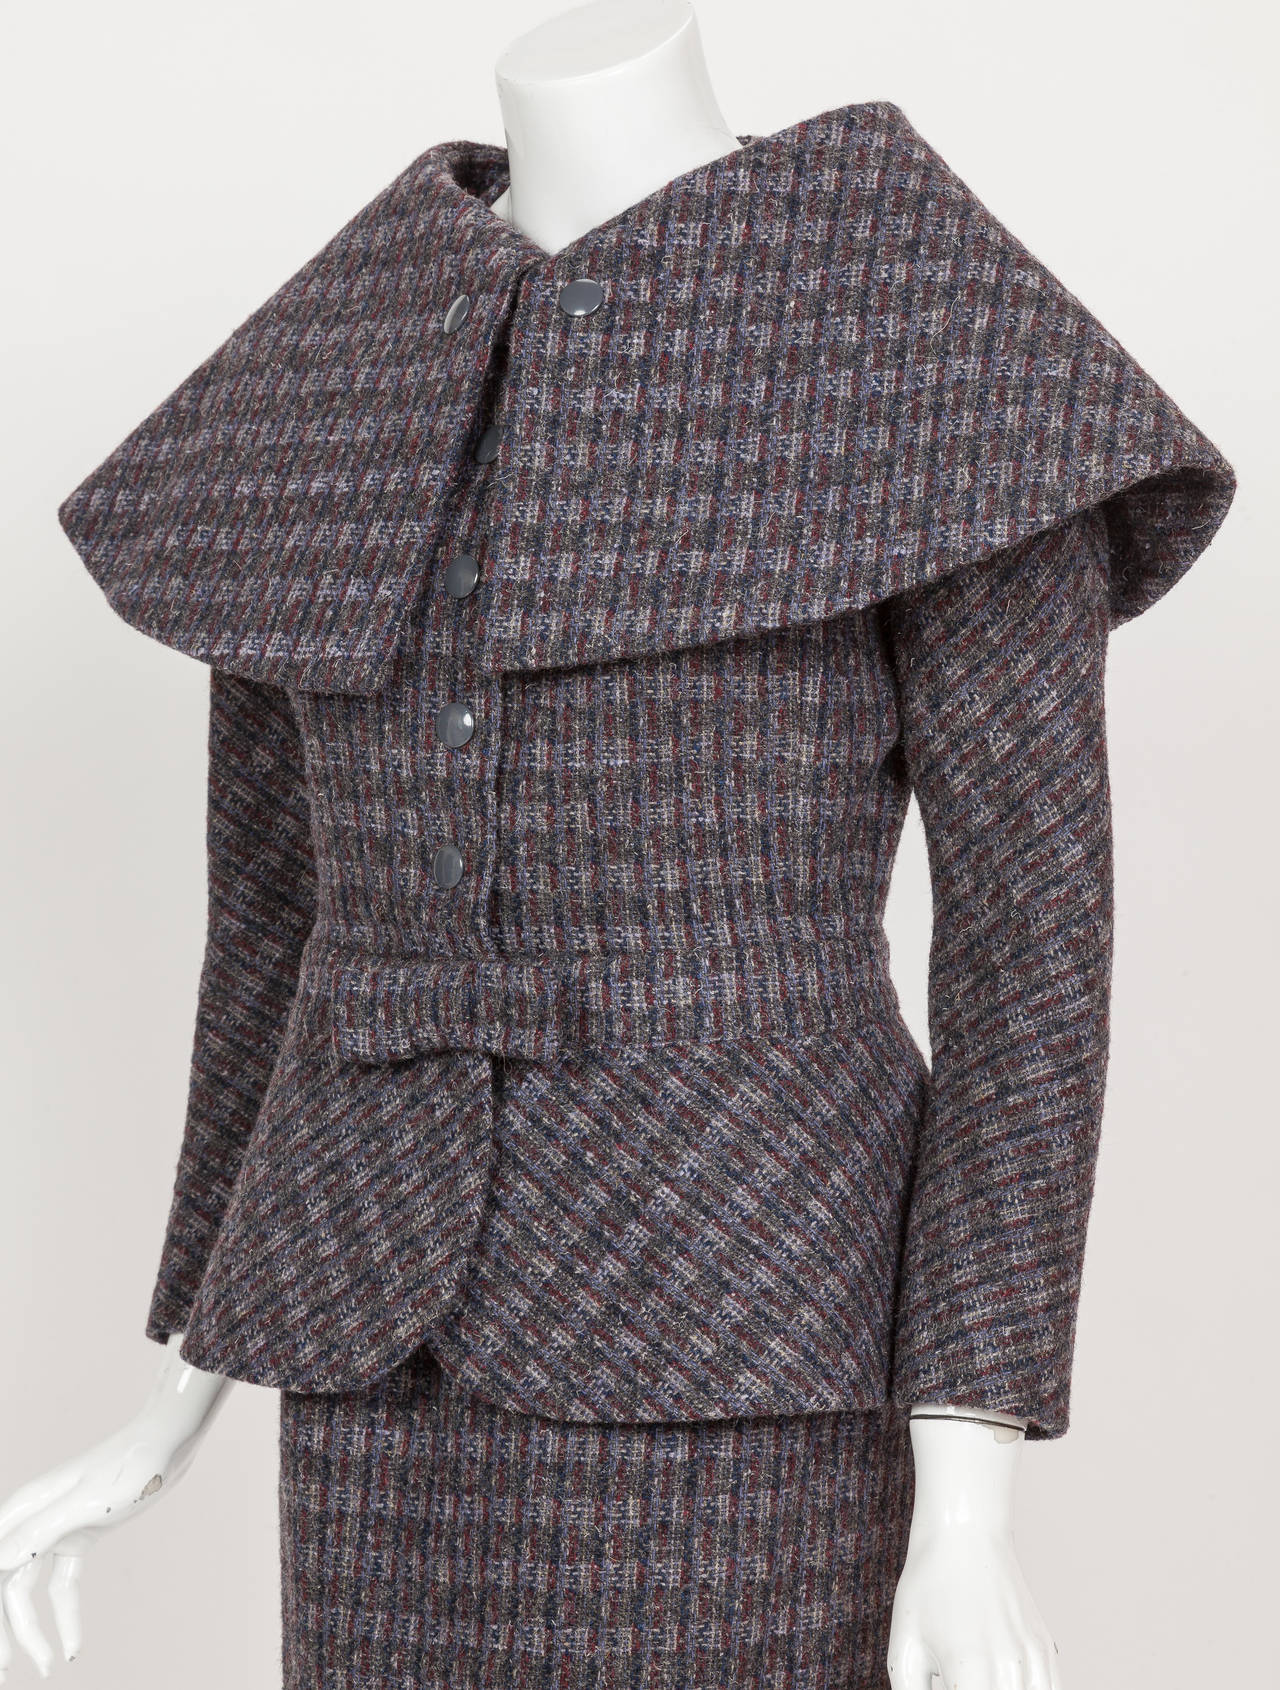 Pierre Cardin Tweed Jacket and Skirt Ensemble Suit w/Detachable collar ca. 1982 4